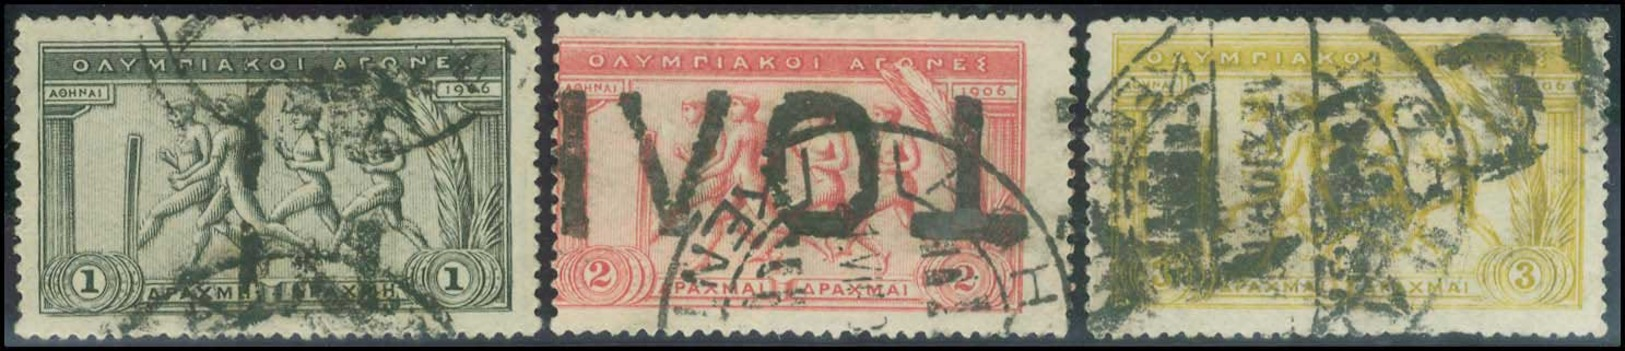 O Lot: 5519 - Timbres